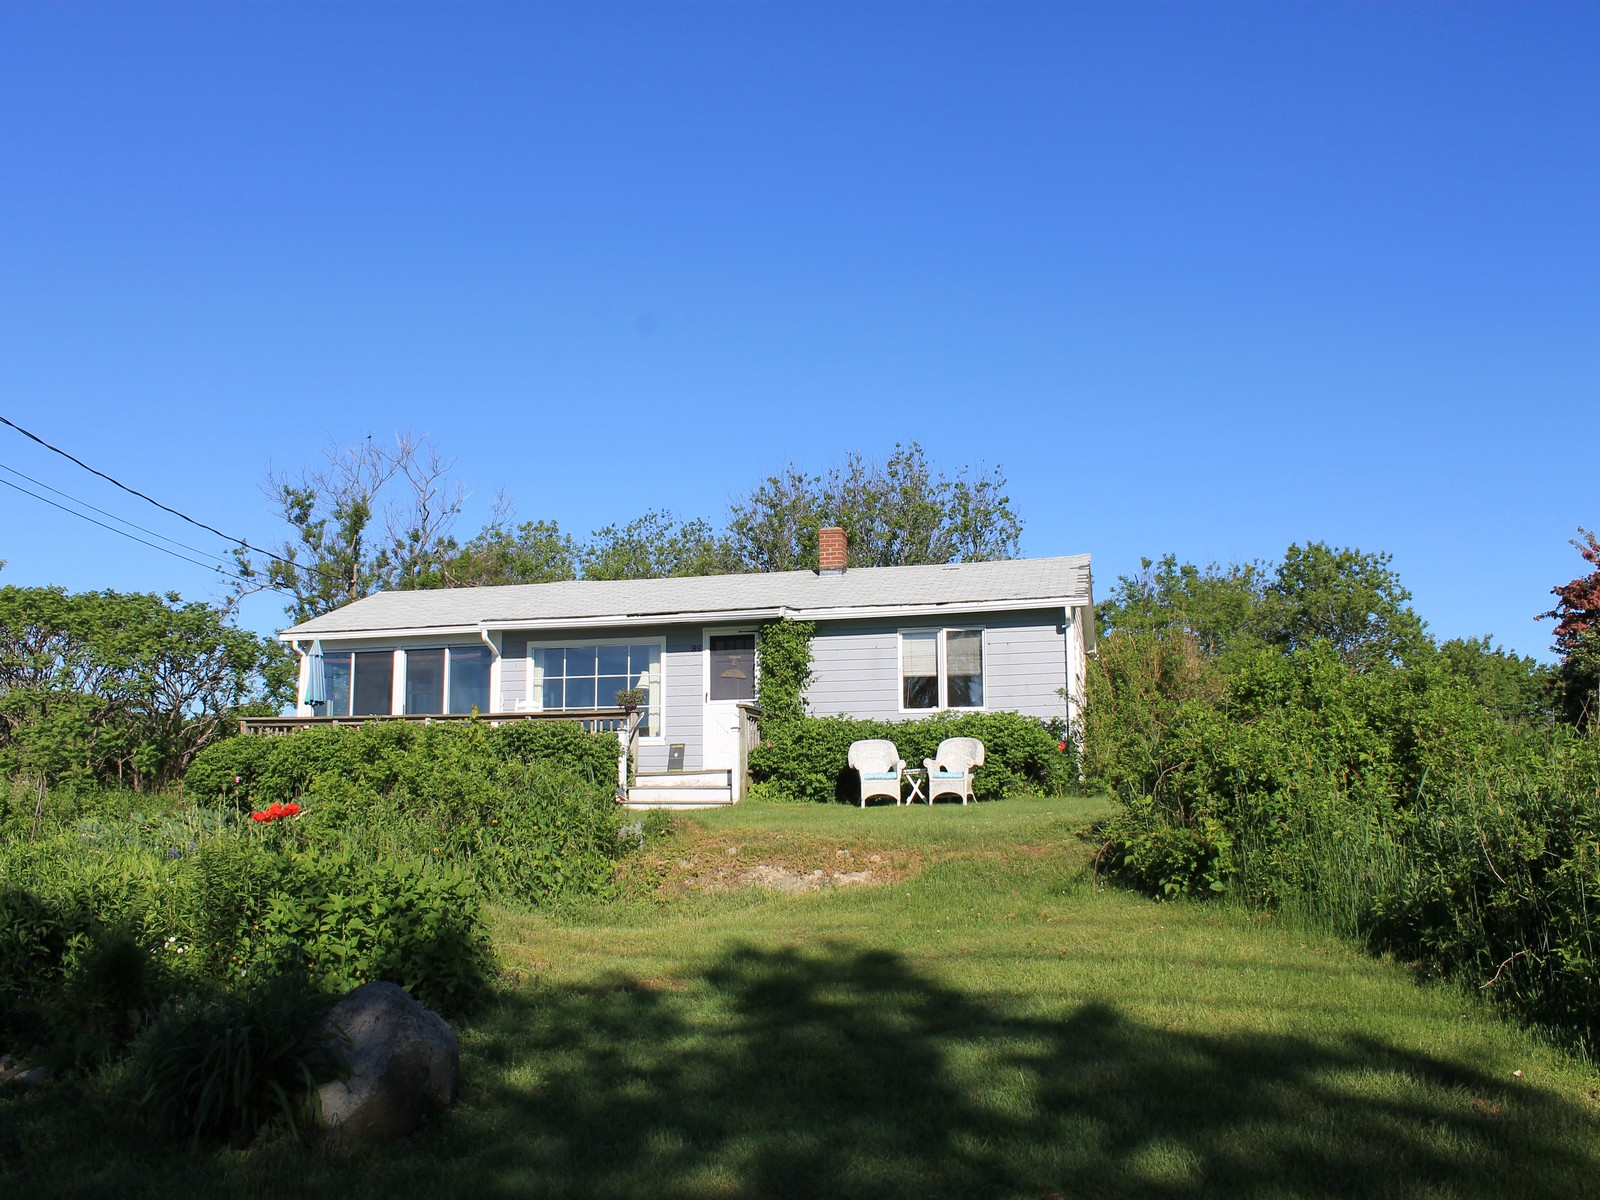 89 Goodwin Rd, Kittery Point, ME 03905